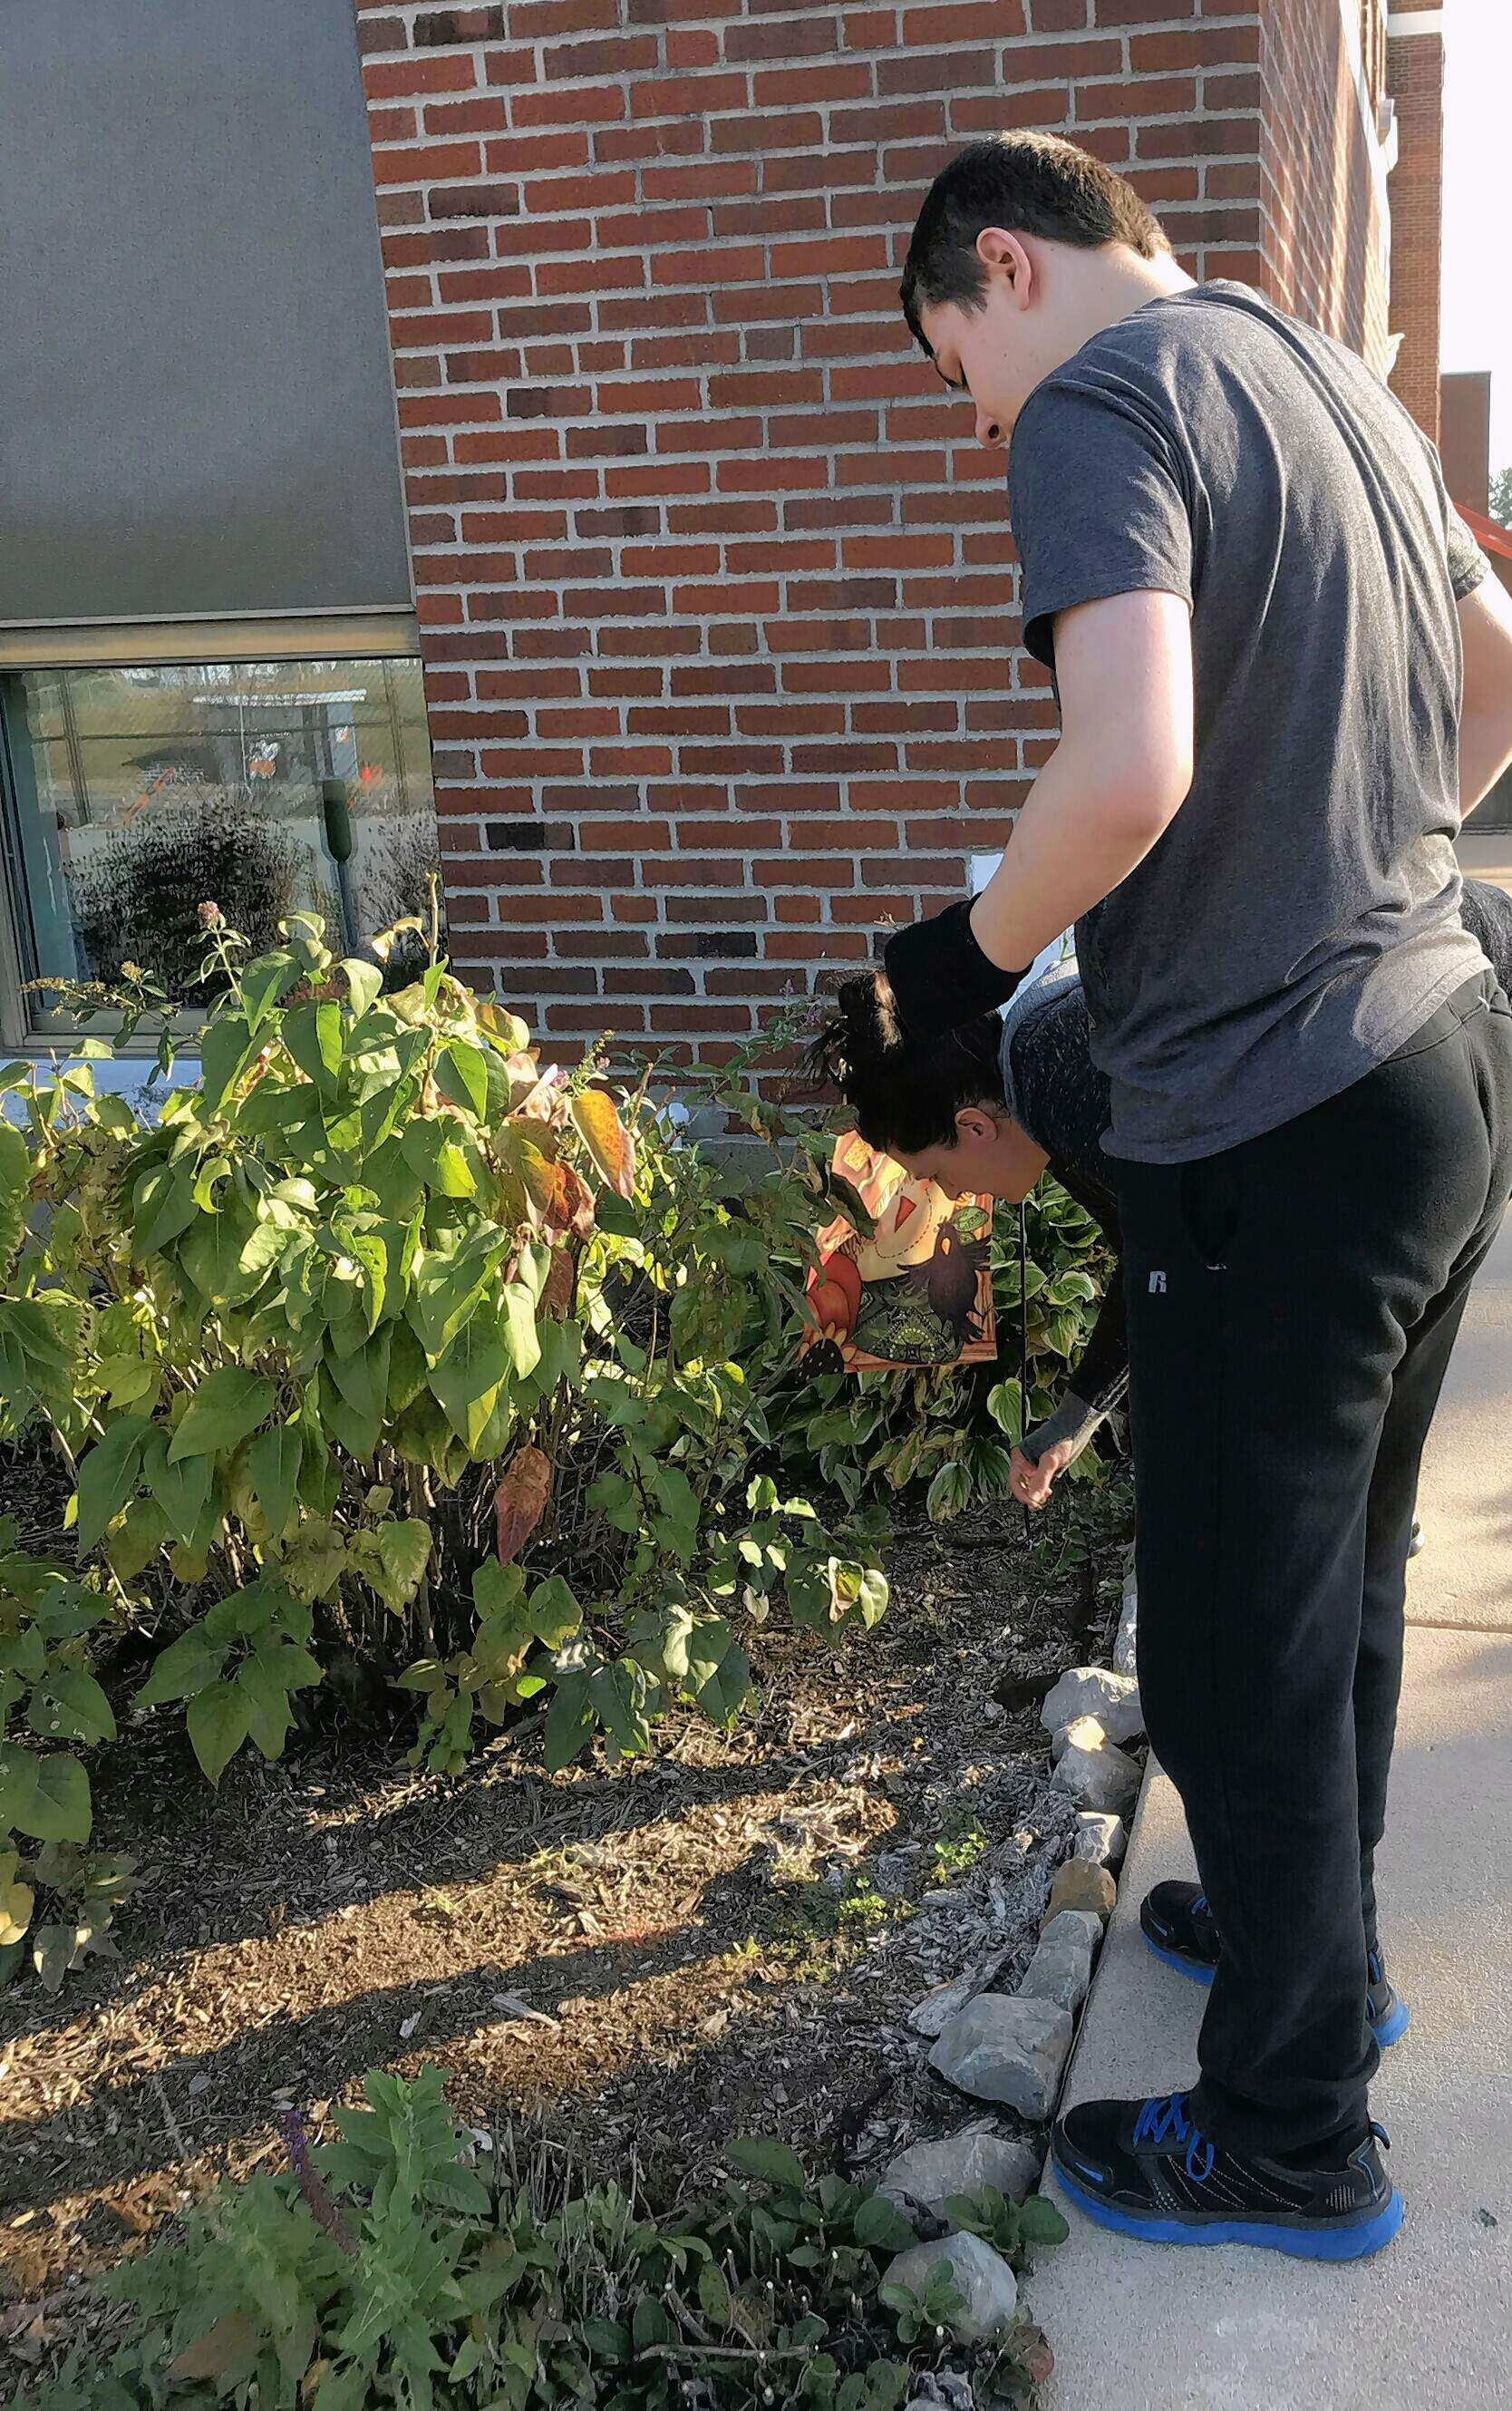 Student Jeffrey Dobyns works in the garden, with paraprofessional Tisha Coffey to his right.